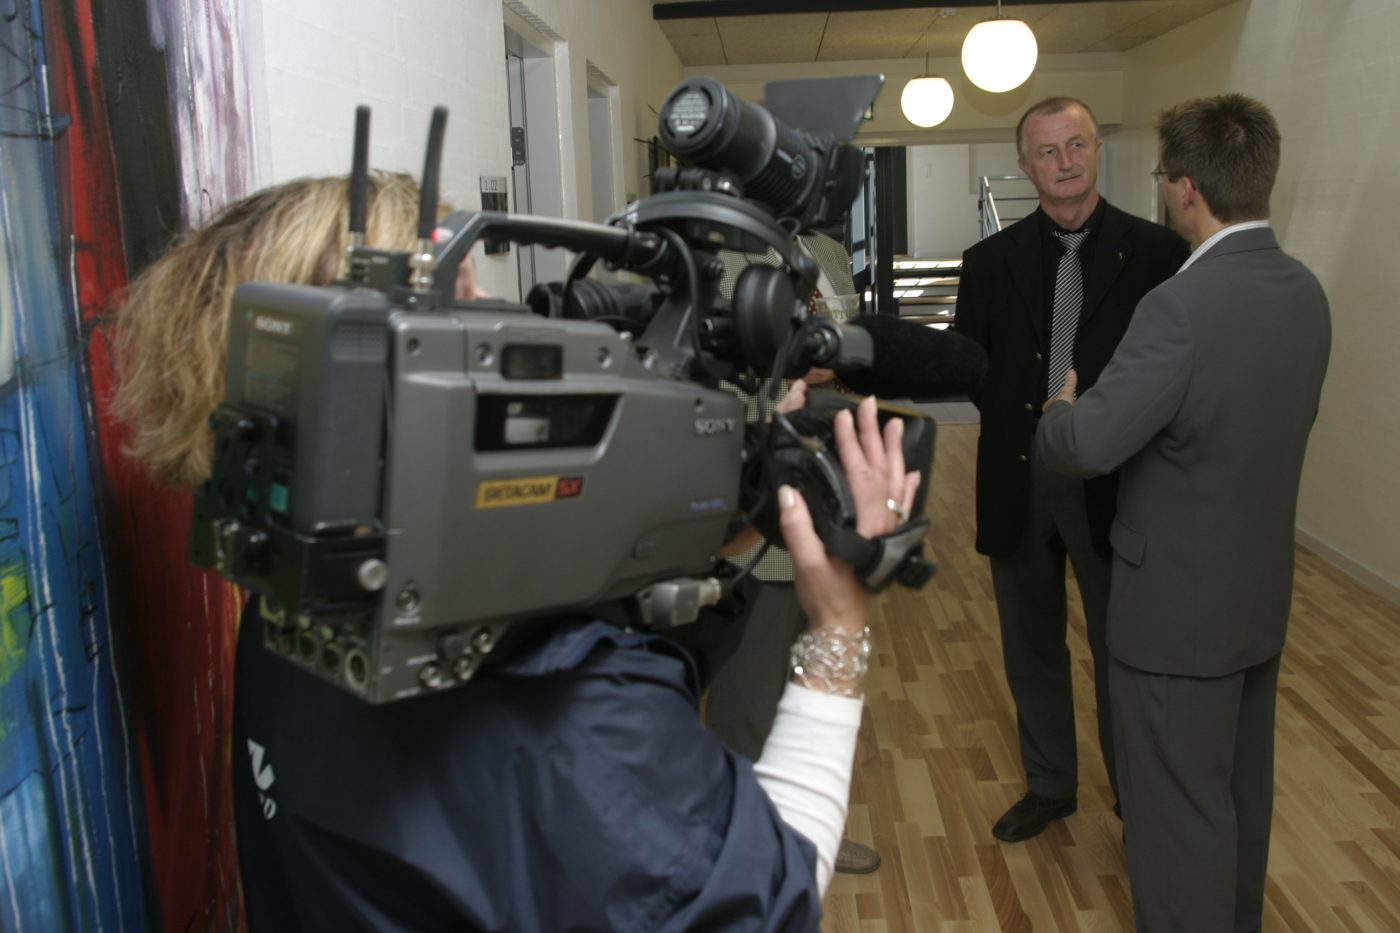 TV-interview med Lars Larsen, direktør for JYSK. Foto: Jan Høst-Aaris